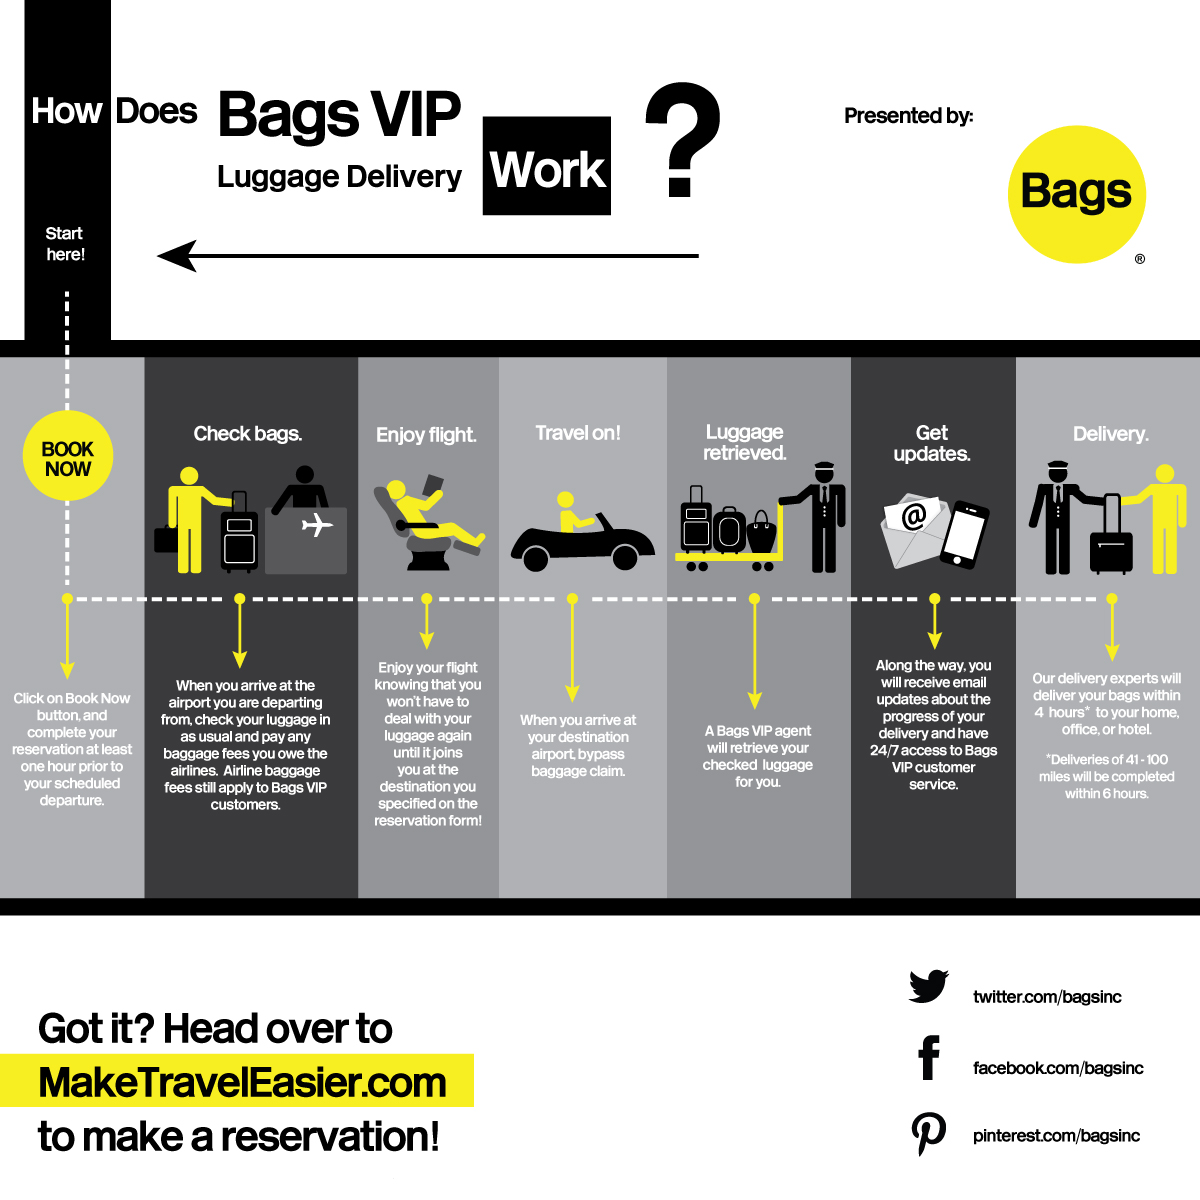 Don't wait for shipping luggage or shipping golf clubs. Use Bags VIP!